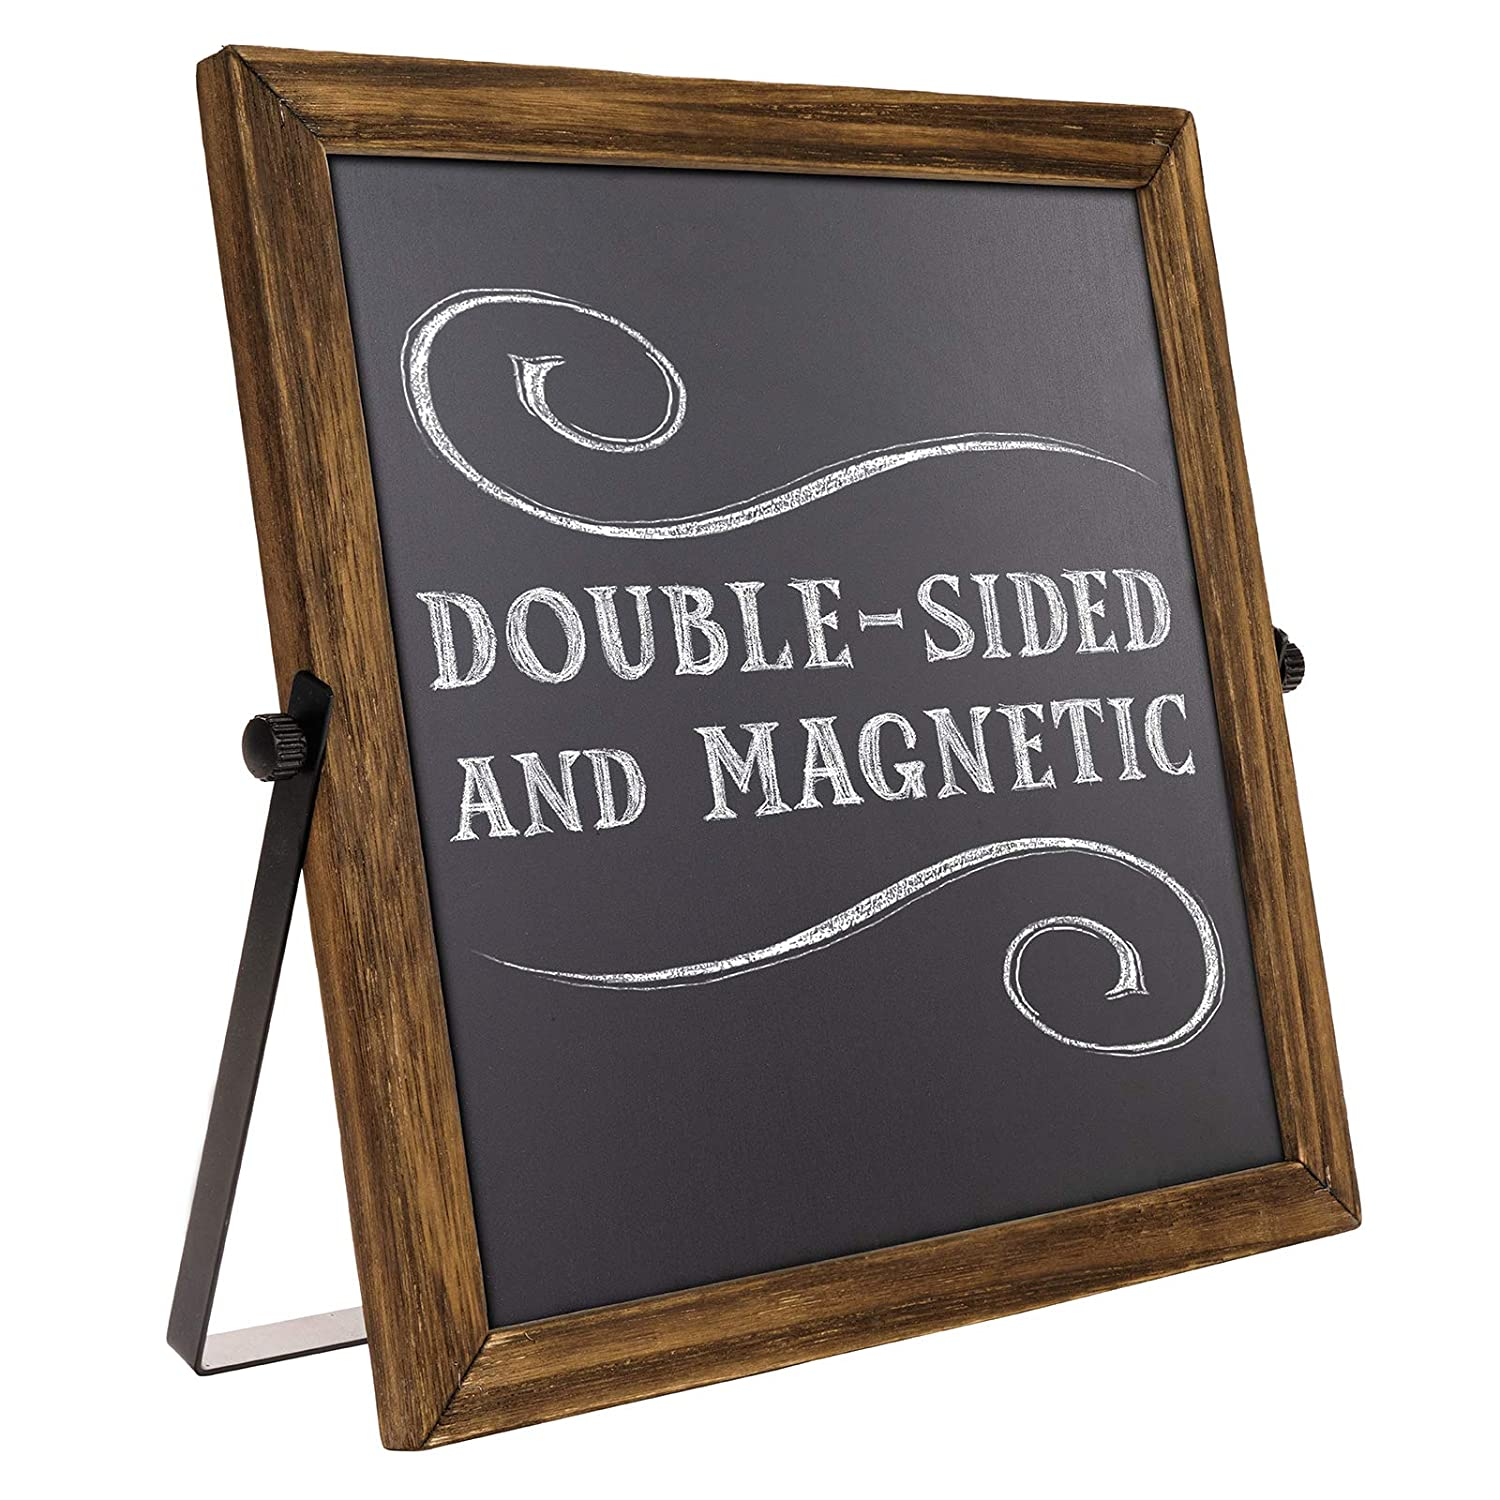 For Parties Displays Weddings Chalkboard Sign on a Stand w// Metal Rustic Frame